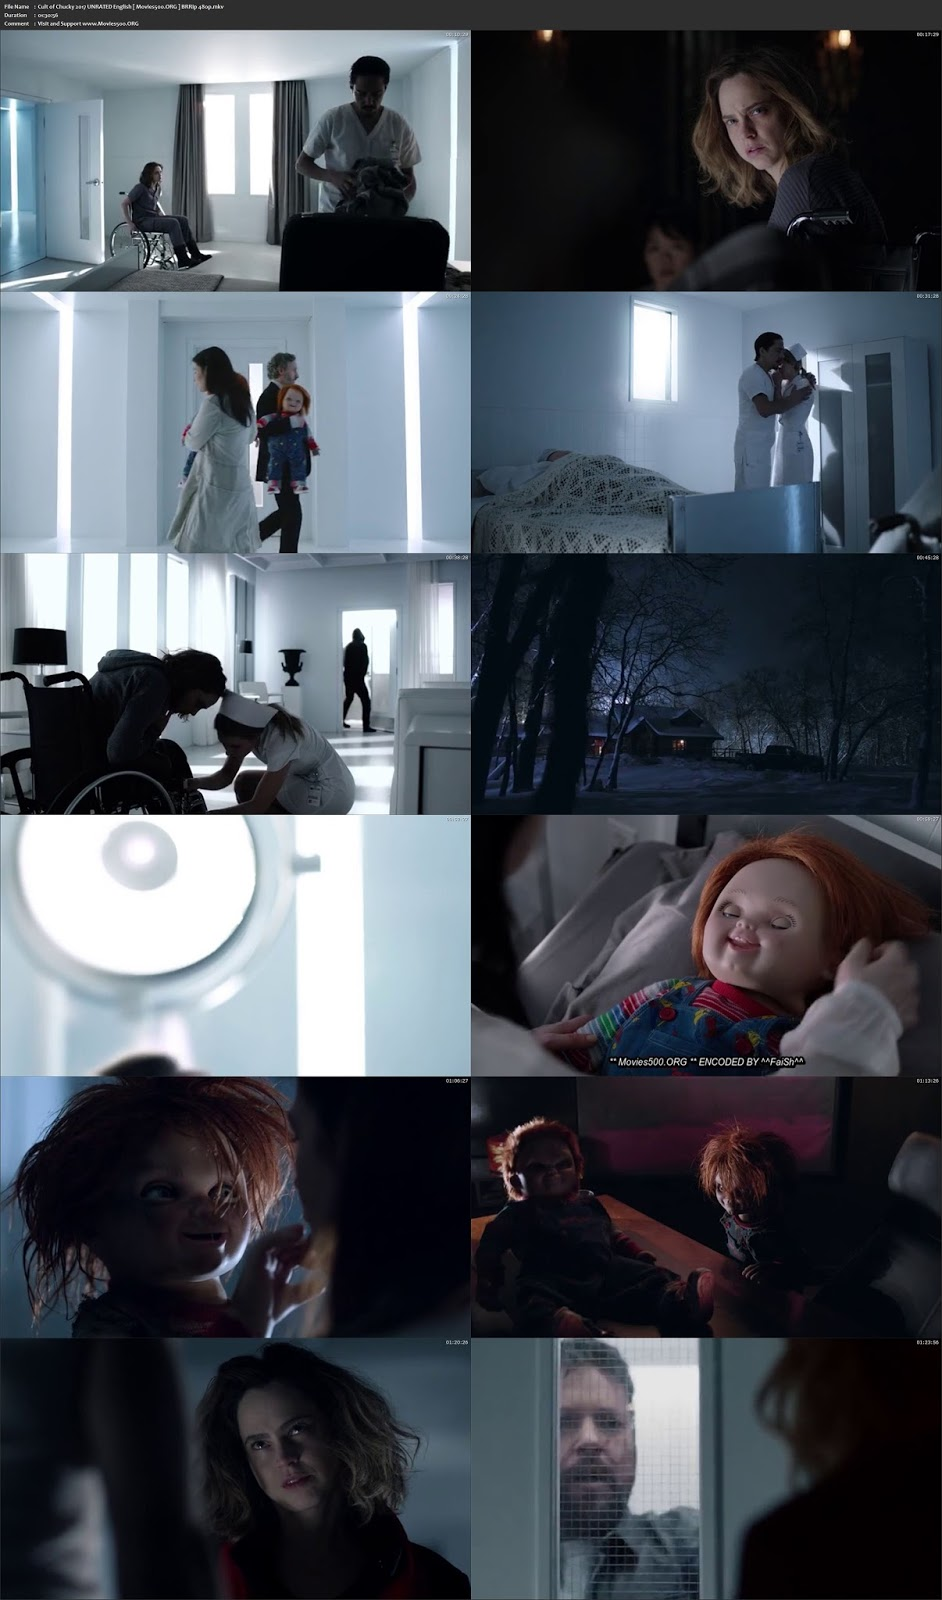 Cult of Chucky 2017 Hollywood 260MB Movie BRRip 480p at gamezun.com